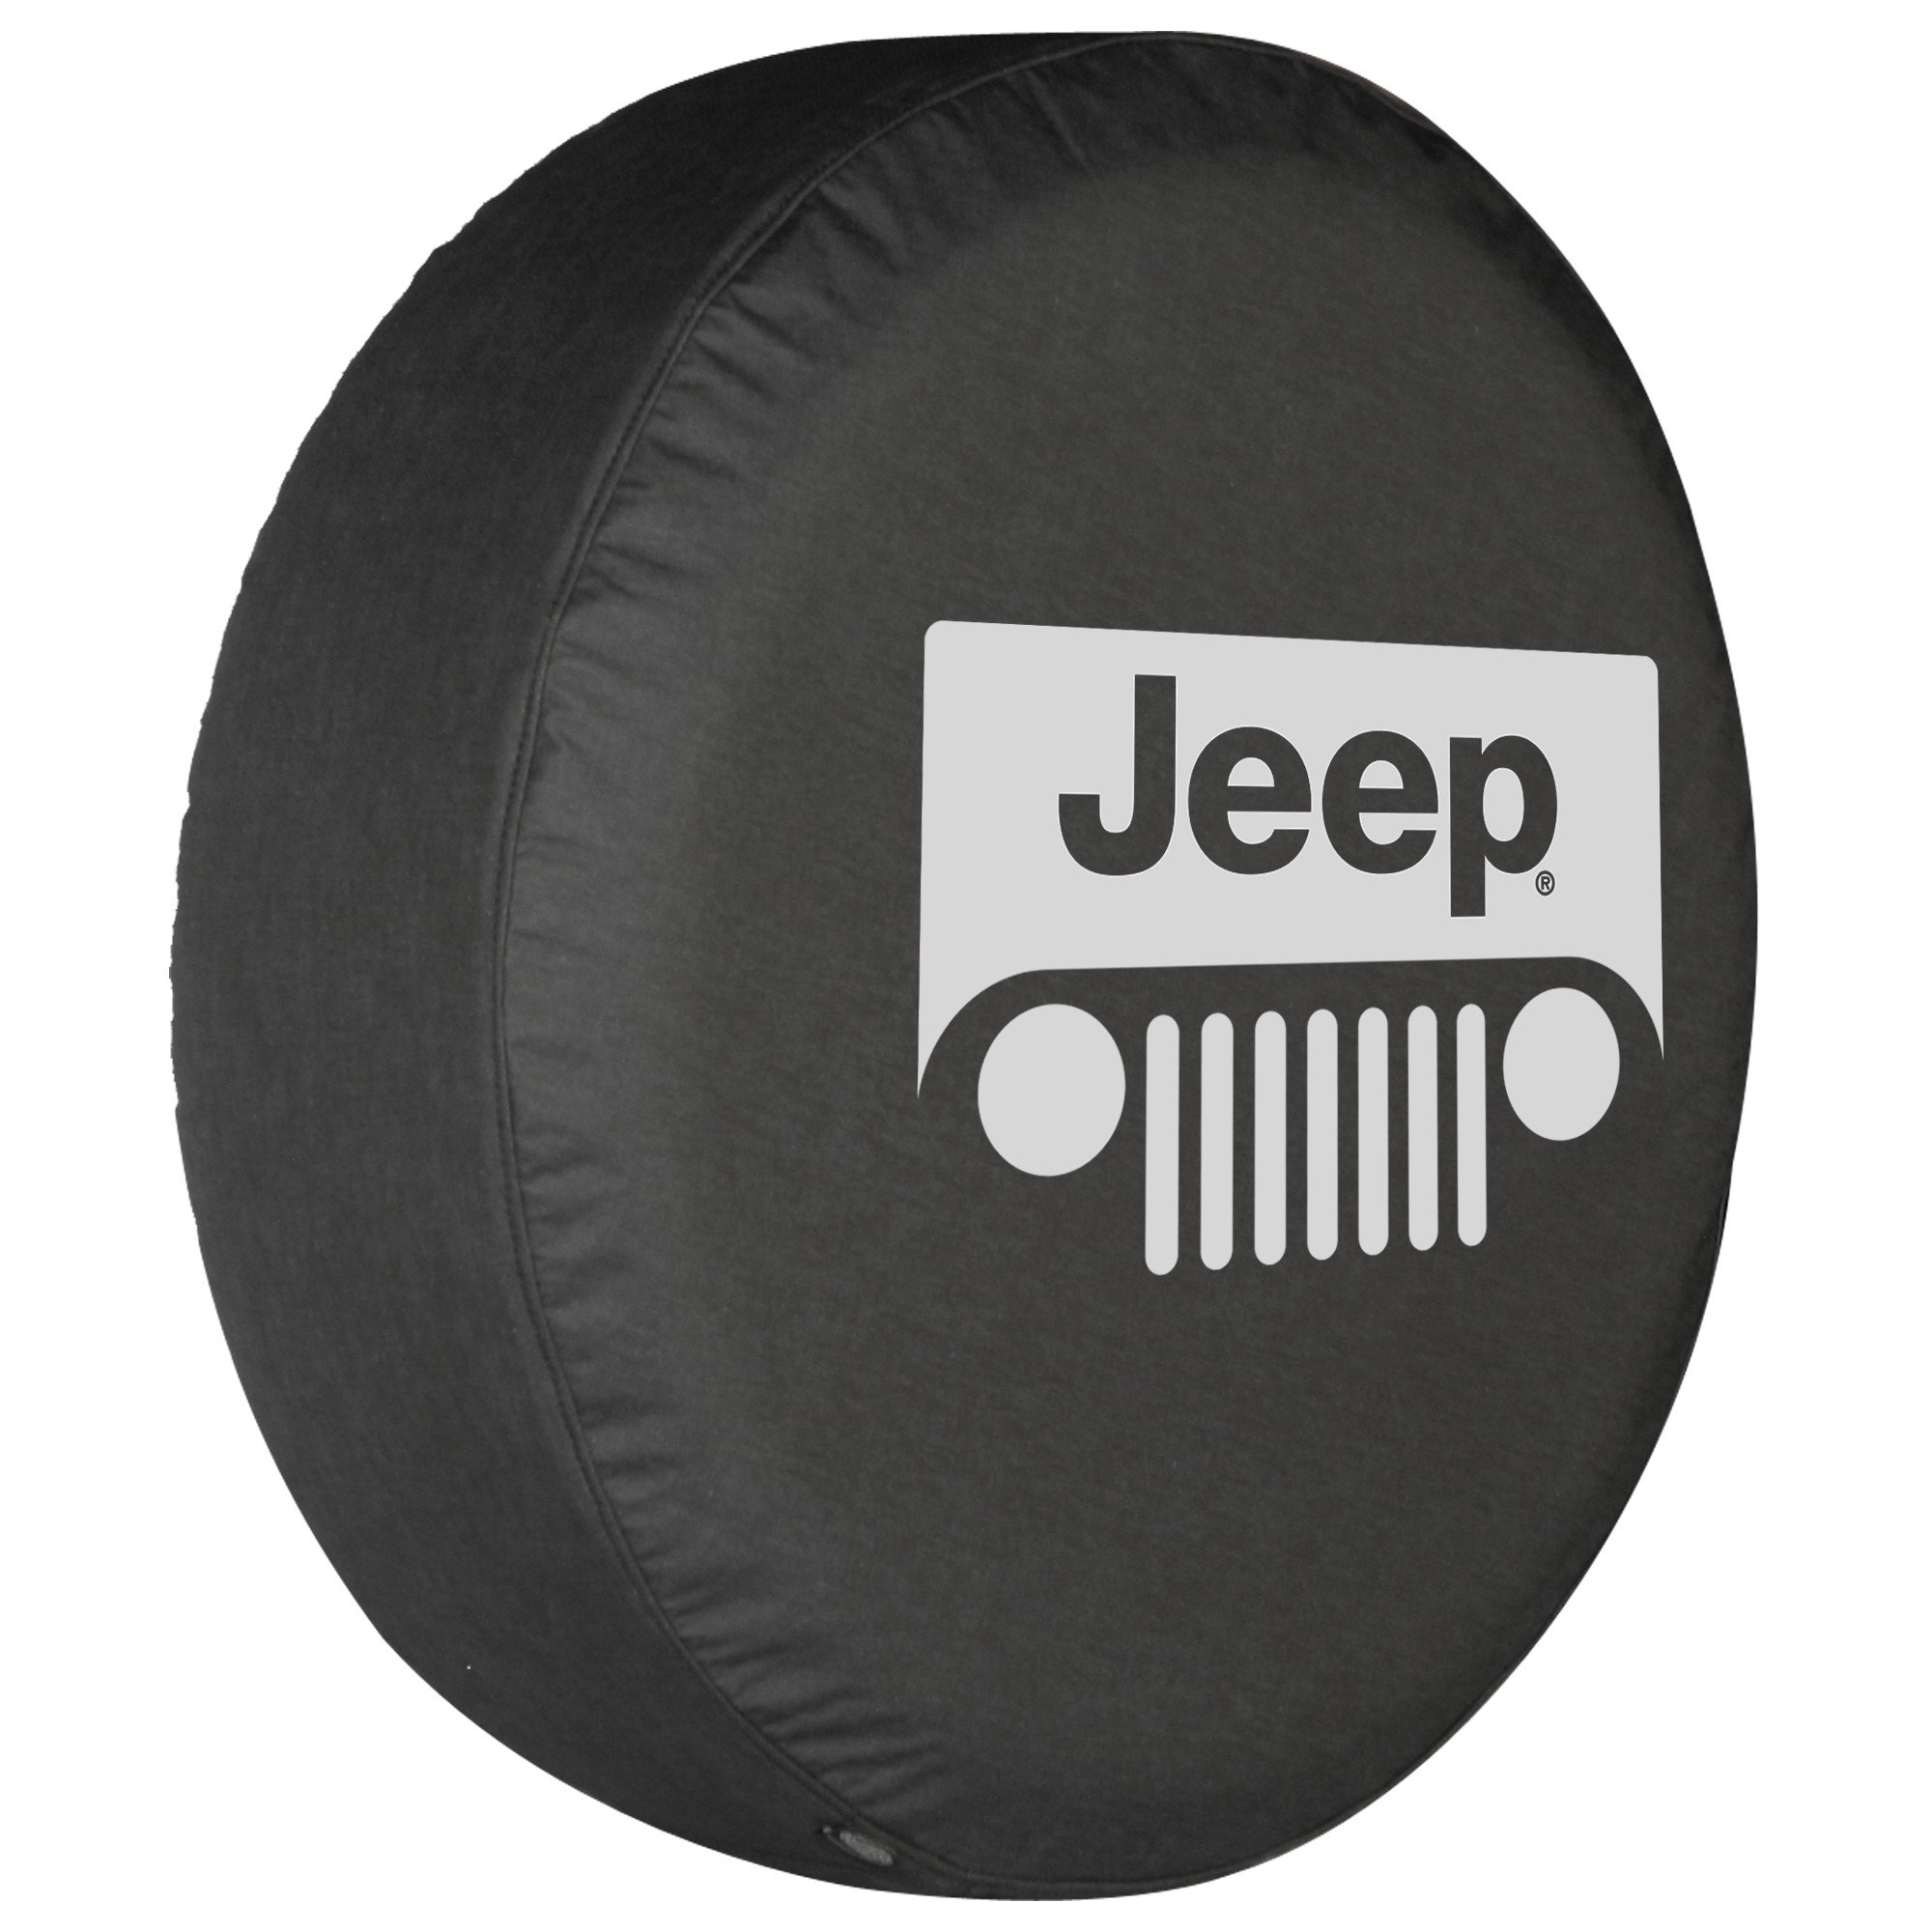 32'' Jeep Grill Tire Cover - (Black Denim Vinyl) - Silver Print - Made in the USA